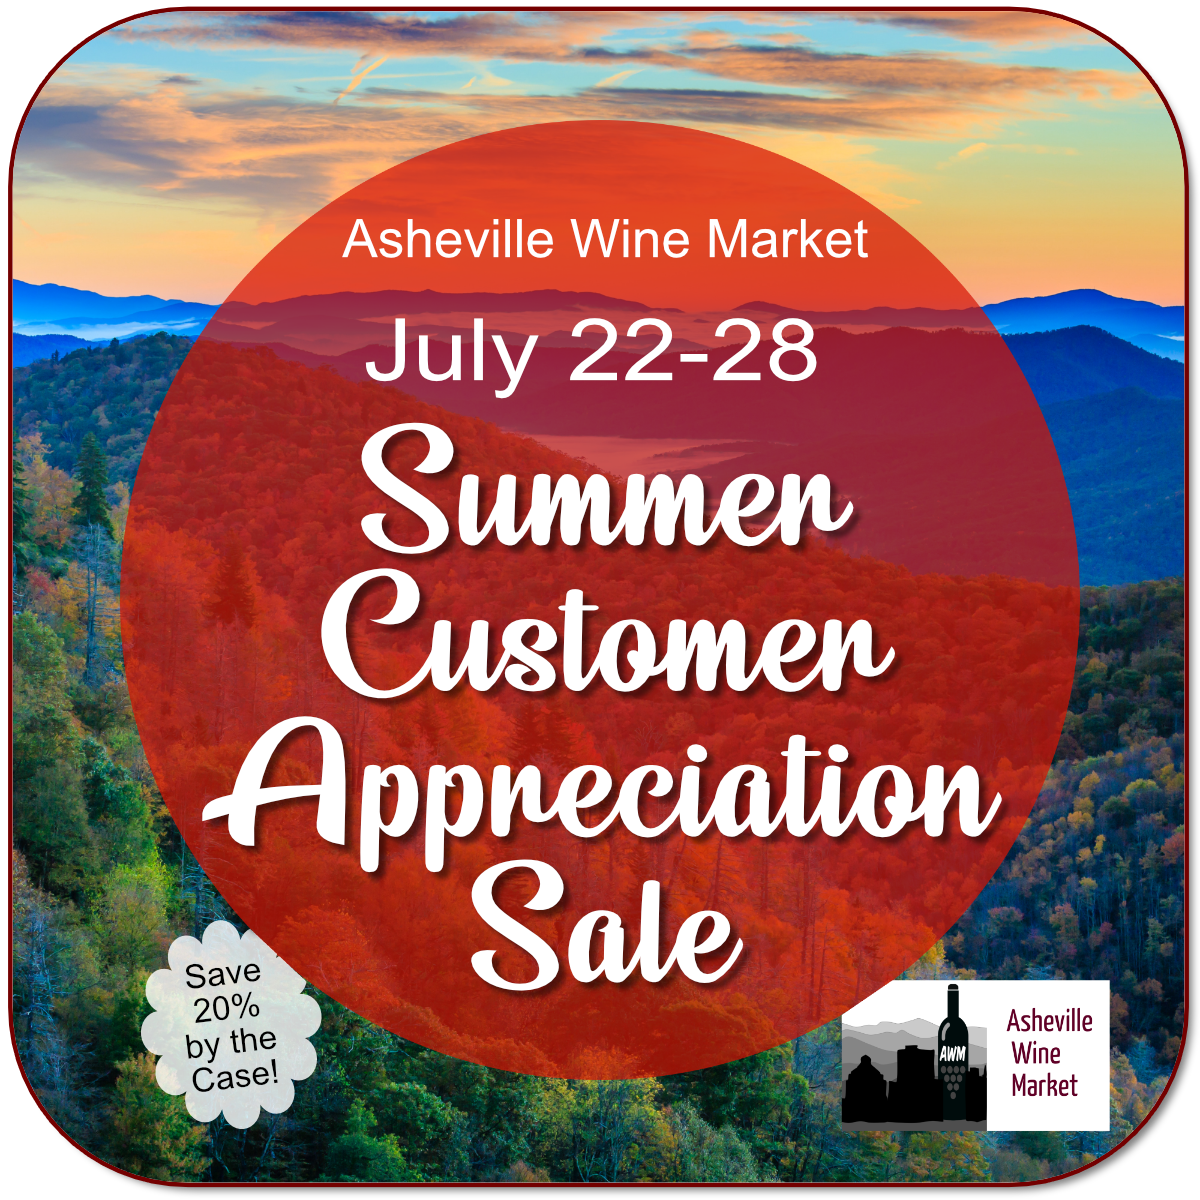 It's time for our annual Summer Customer Appreciation Sale